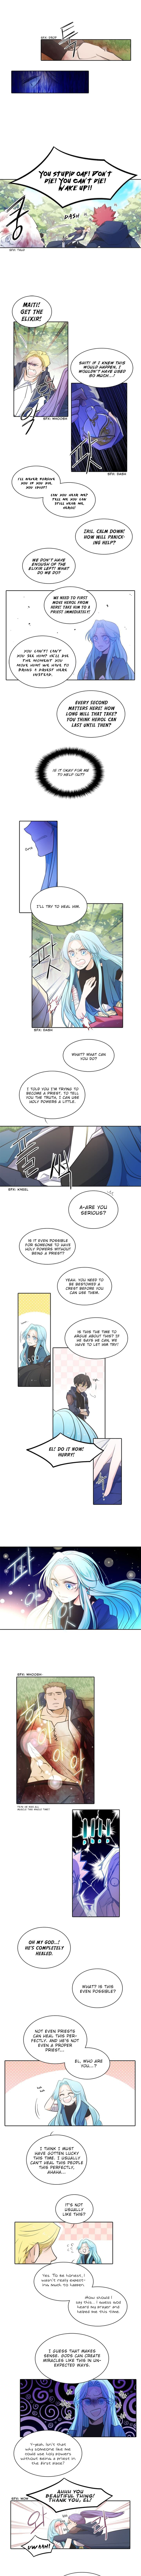 Elqueeness - chapter 40 - #3